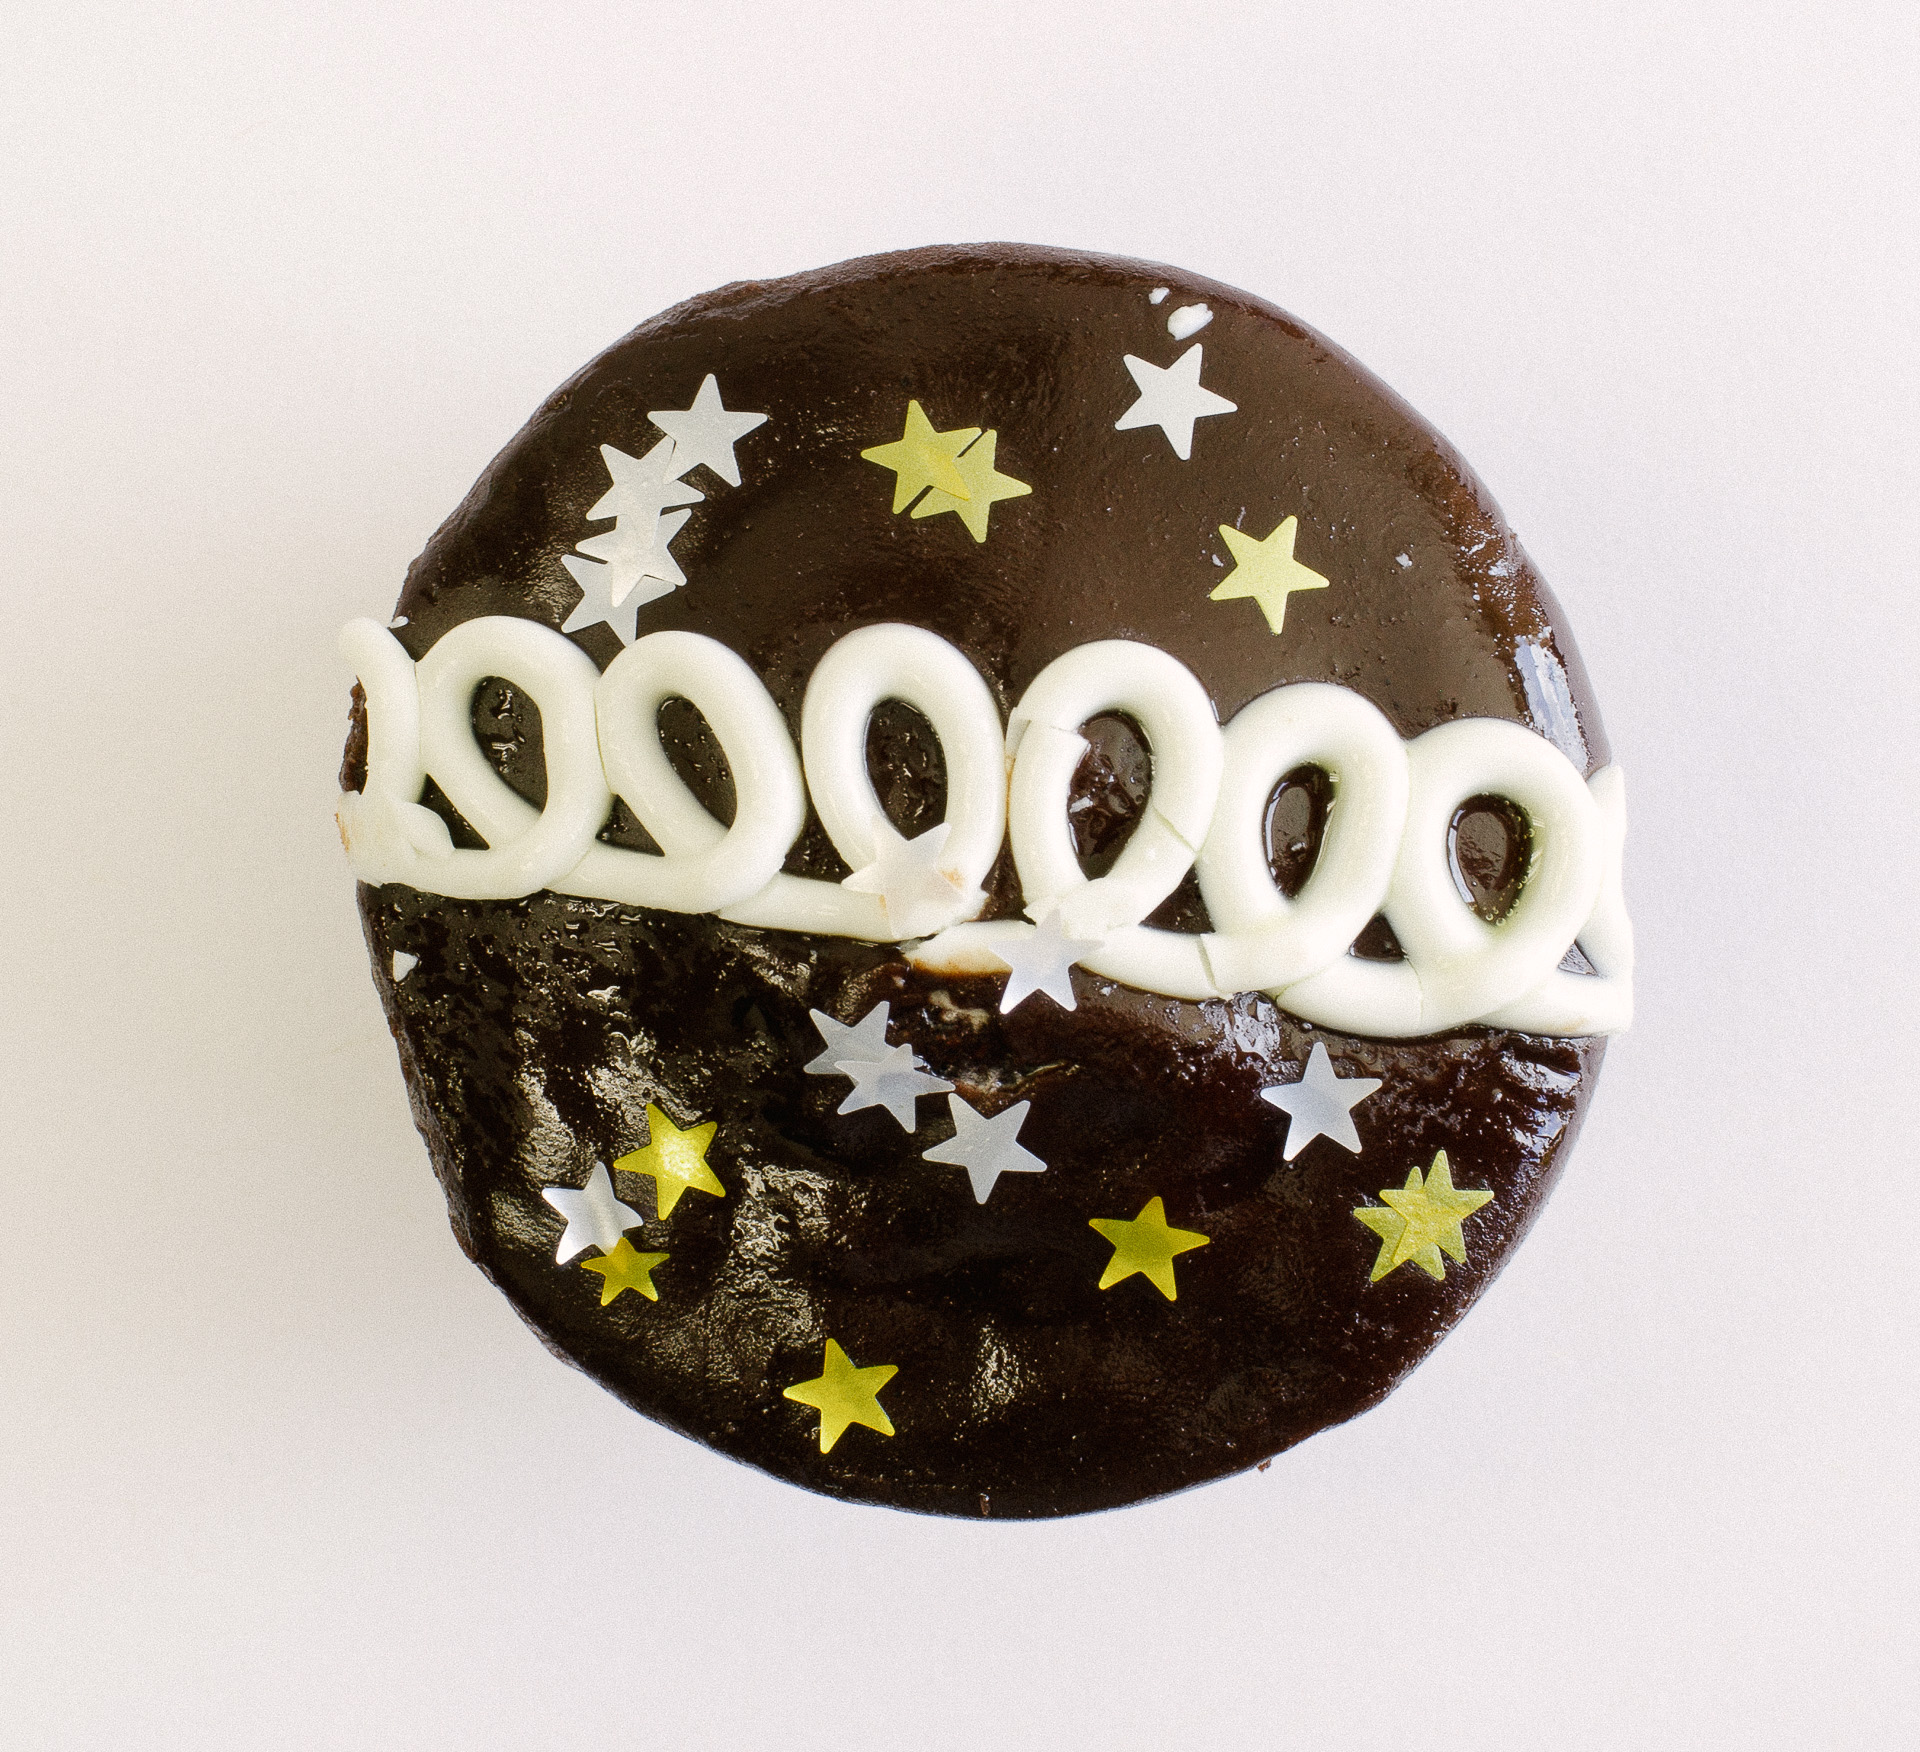 Silver and Gold stars on a Cupcake top